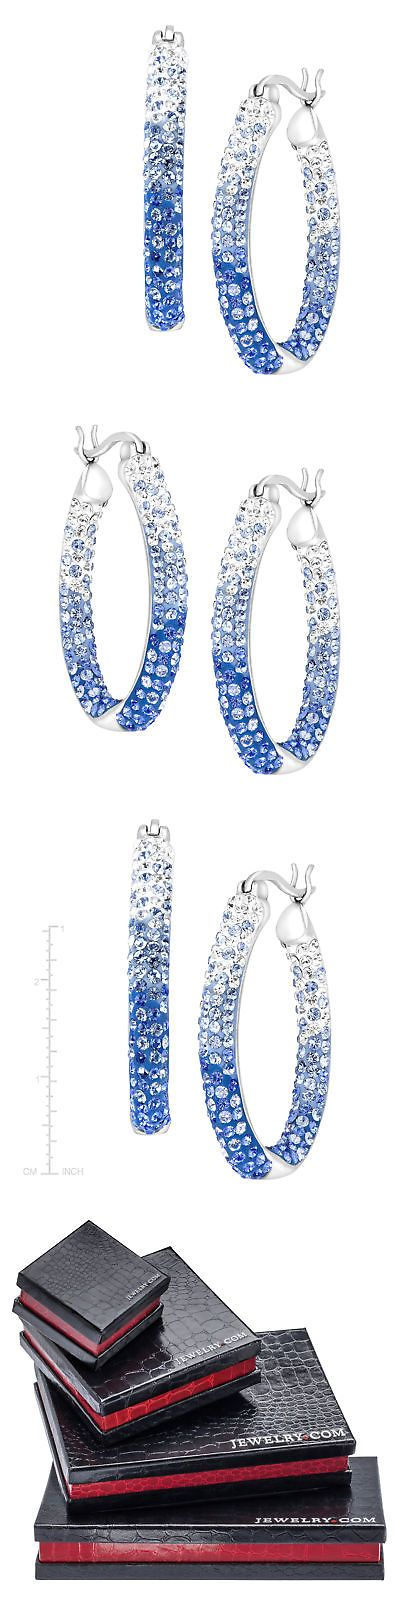 Other Fine Earrings 10984: Crystaluxe Oval Hoop Earrings With Blue Ombre Swarovski Crystals Sterling Silver -> BUY IT NOW ONLY: $62 on eBay!